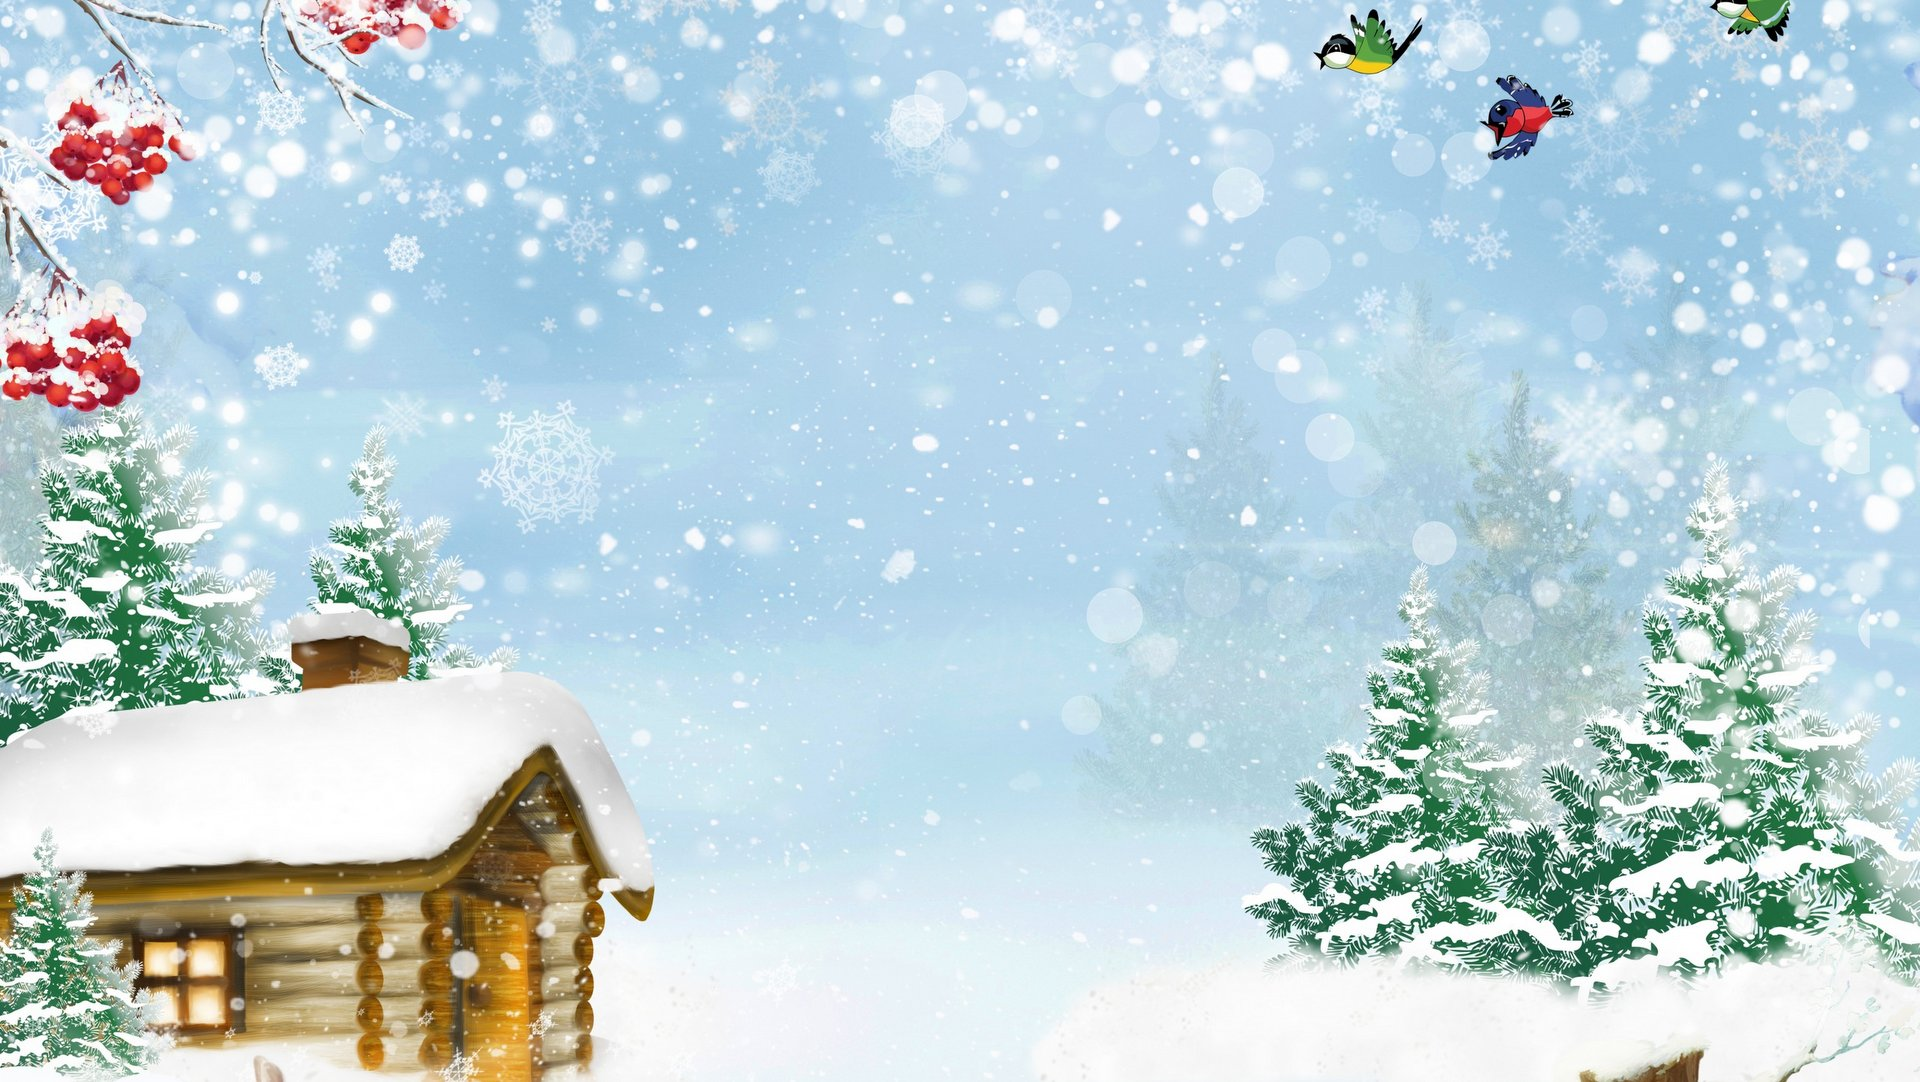 20 Merry Christmas Hd Wallpapers 1080p 2018 Collection